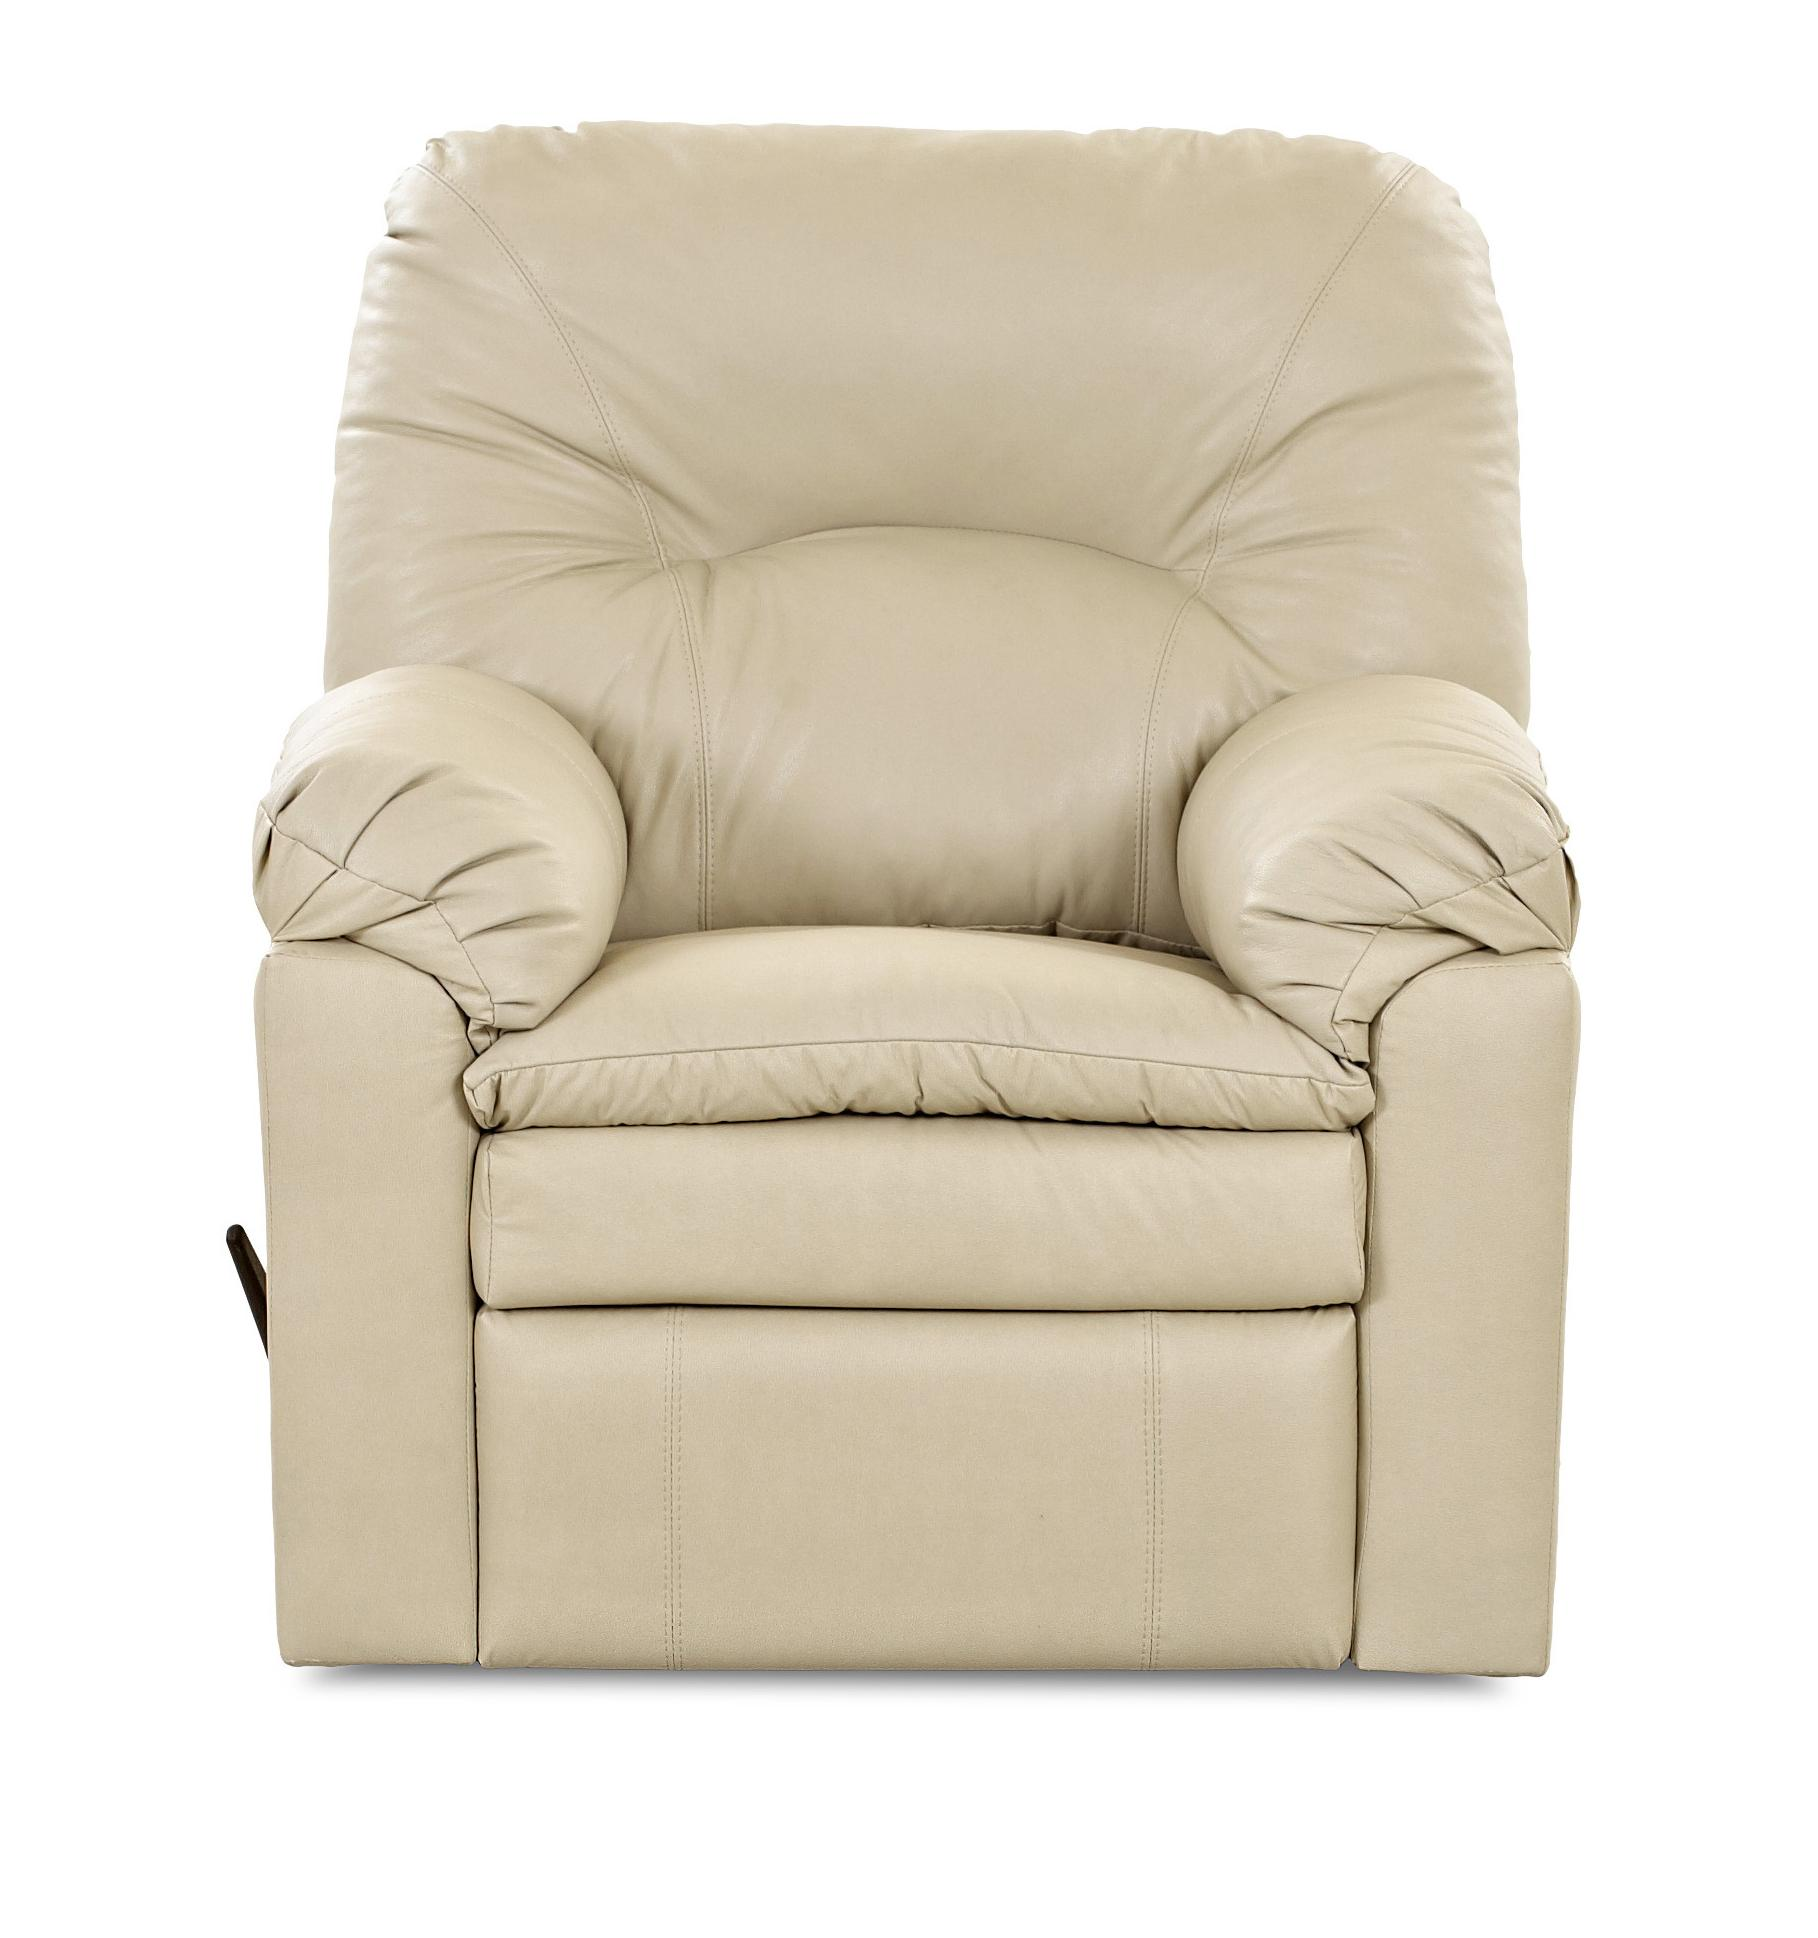 Klaussner Bennington Casual Reclining Chair - Item Number: LV40703 RC